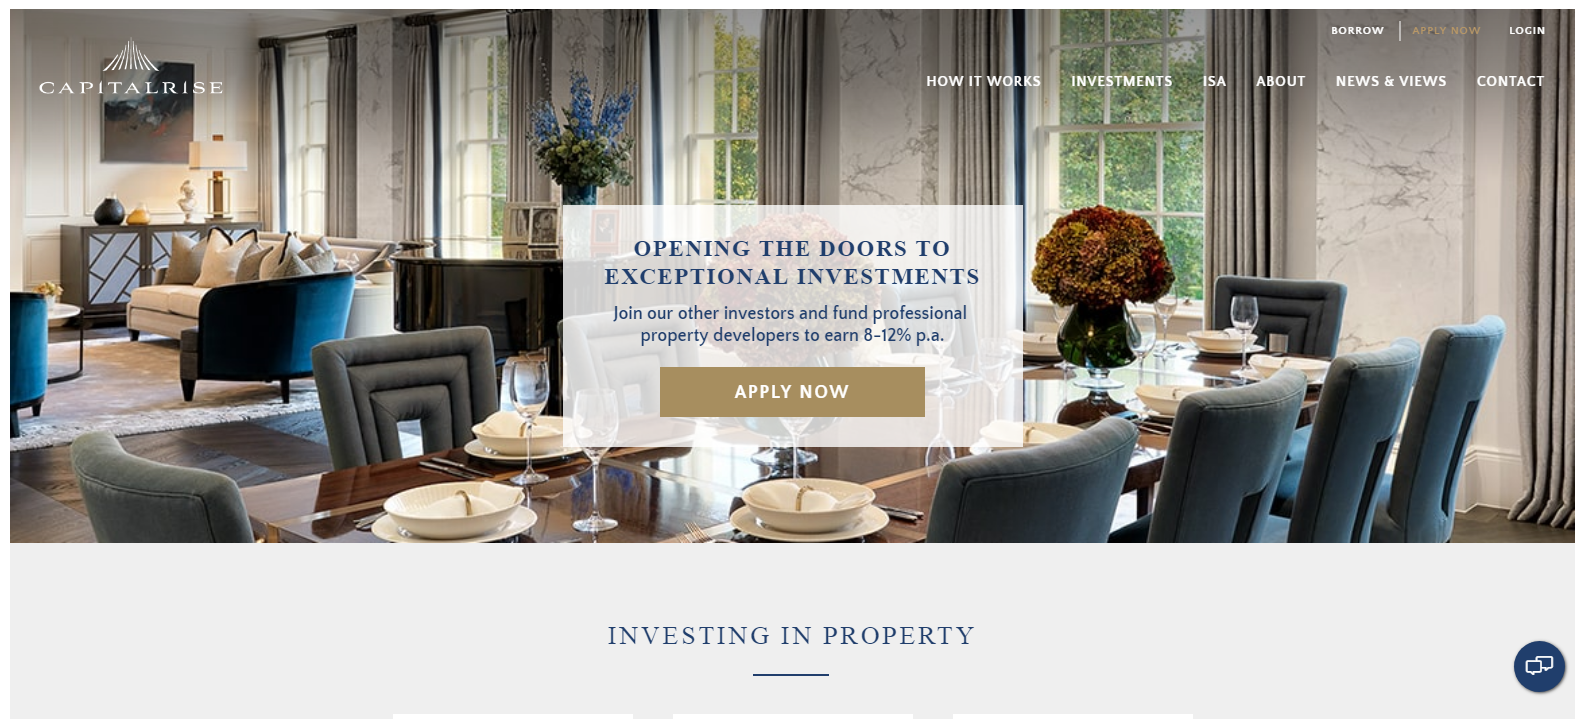 real estate crowdfunding website for non-accredited investors